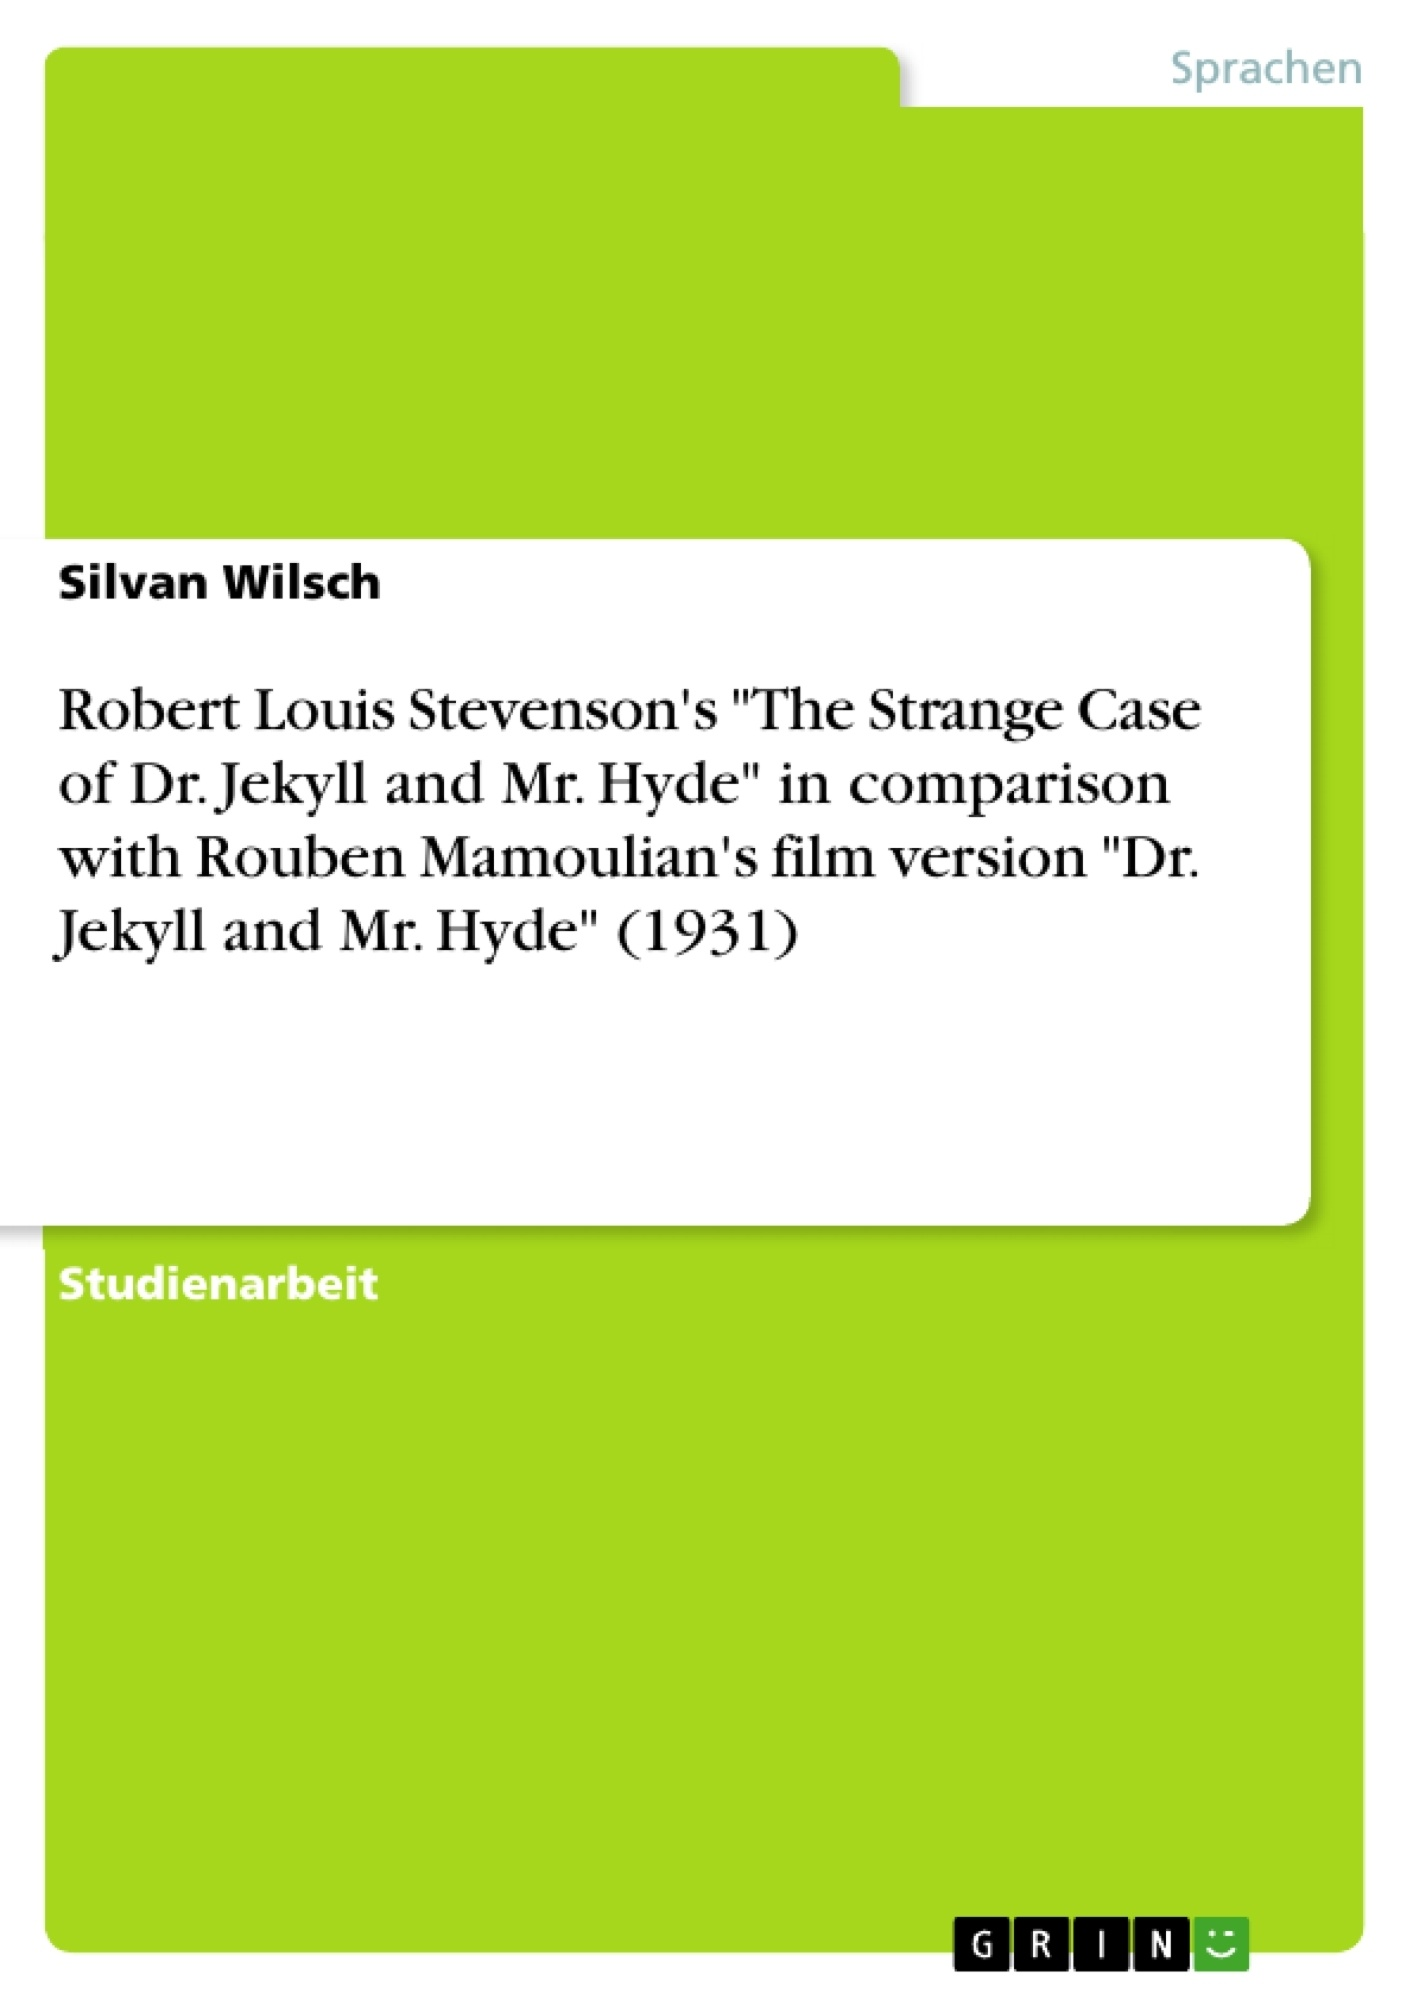 """Titel: Robert Louis Stevenson's """"The Strange Case of Dr. Jekyll and Mr. Hyde"""" in comparison with Rouben Mamoulian's film version """"Dr. Jekyll and Mr. Hyde"""" (1931)"""